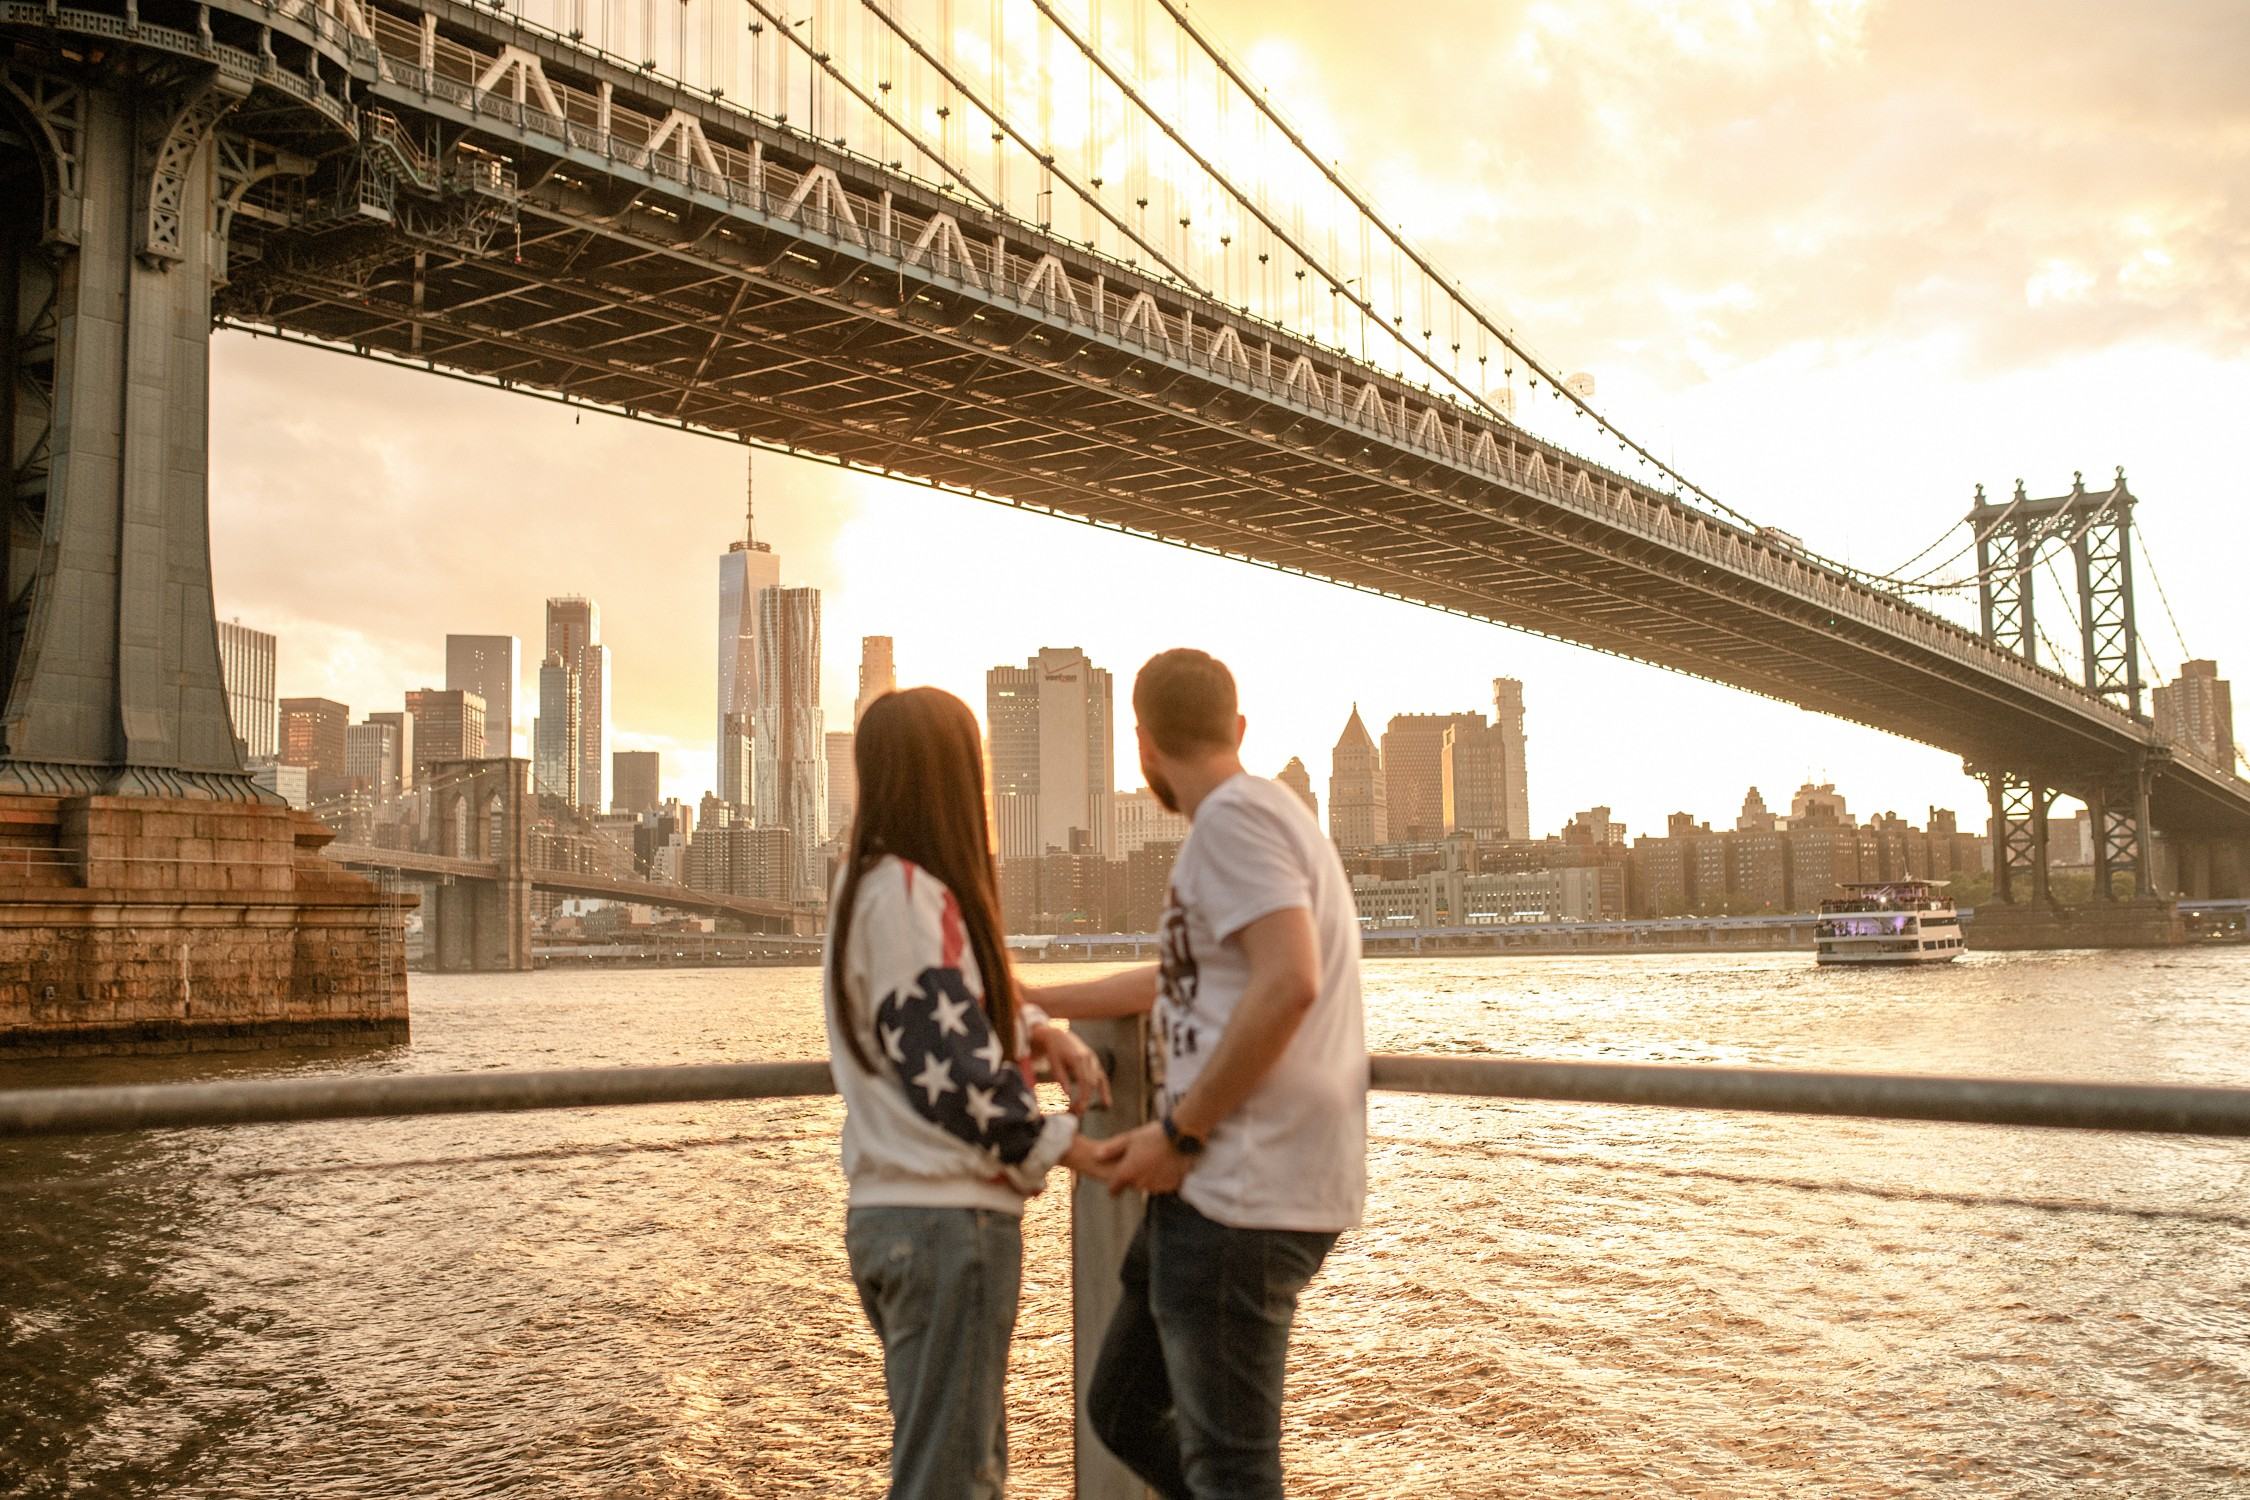 Engagement Photos in DUMBO - A couple looks at the sunset on the NYC skyline